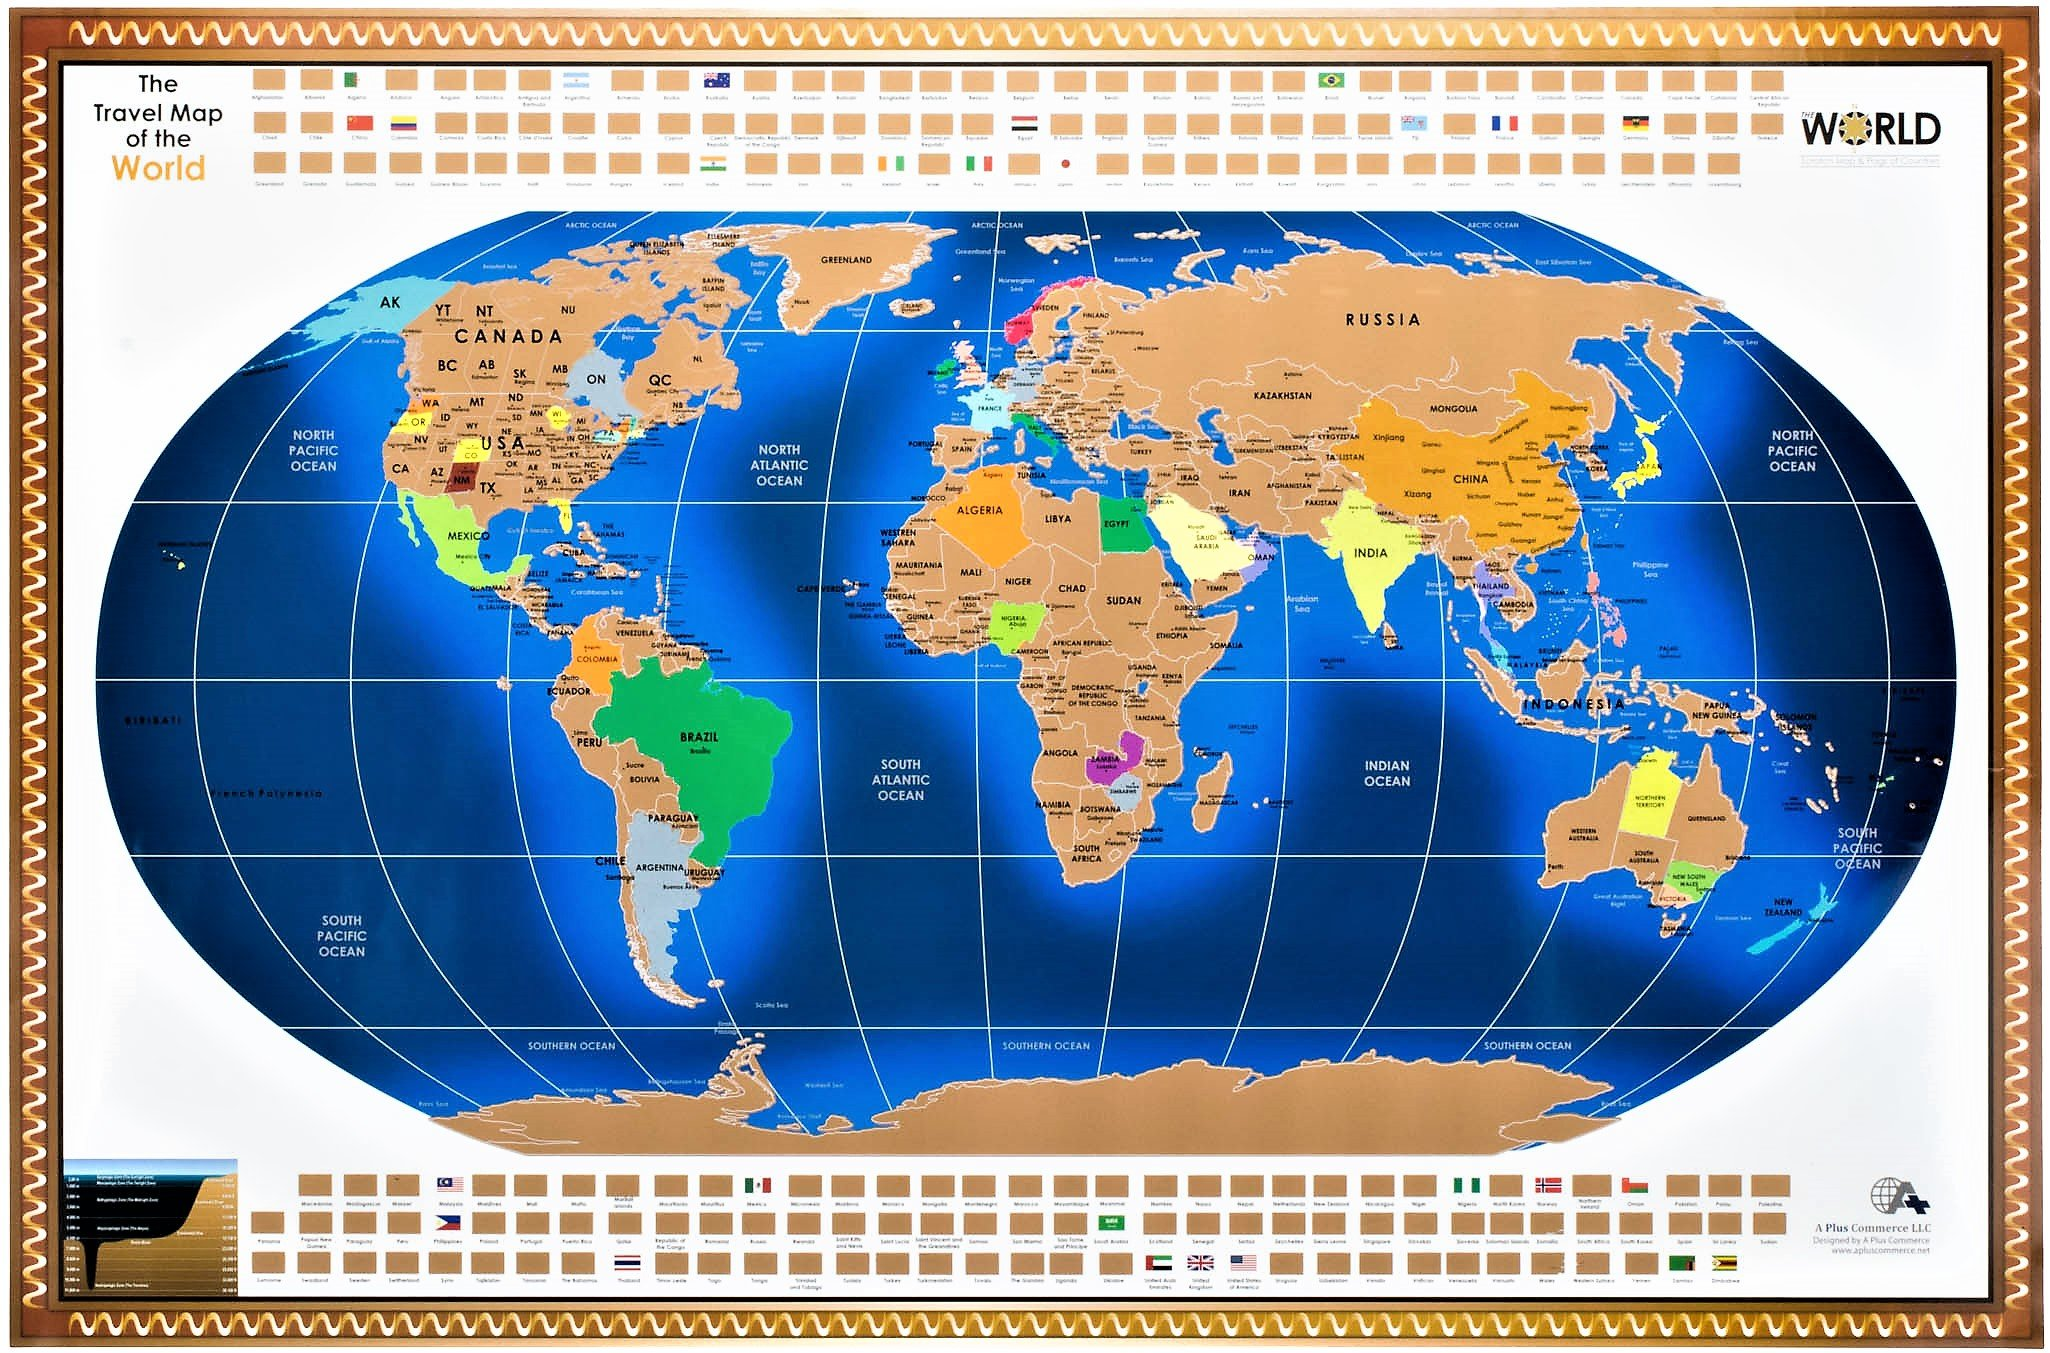 A scratch off world travel map poster x large 35 by 235 us a scratch off world travel map poster x large 35 by 235 us states canada australia china provinces outlined track your adventures includes scratcher gumiabroncs Image collections